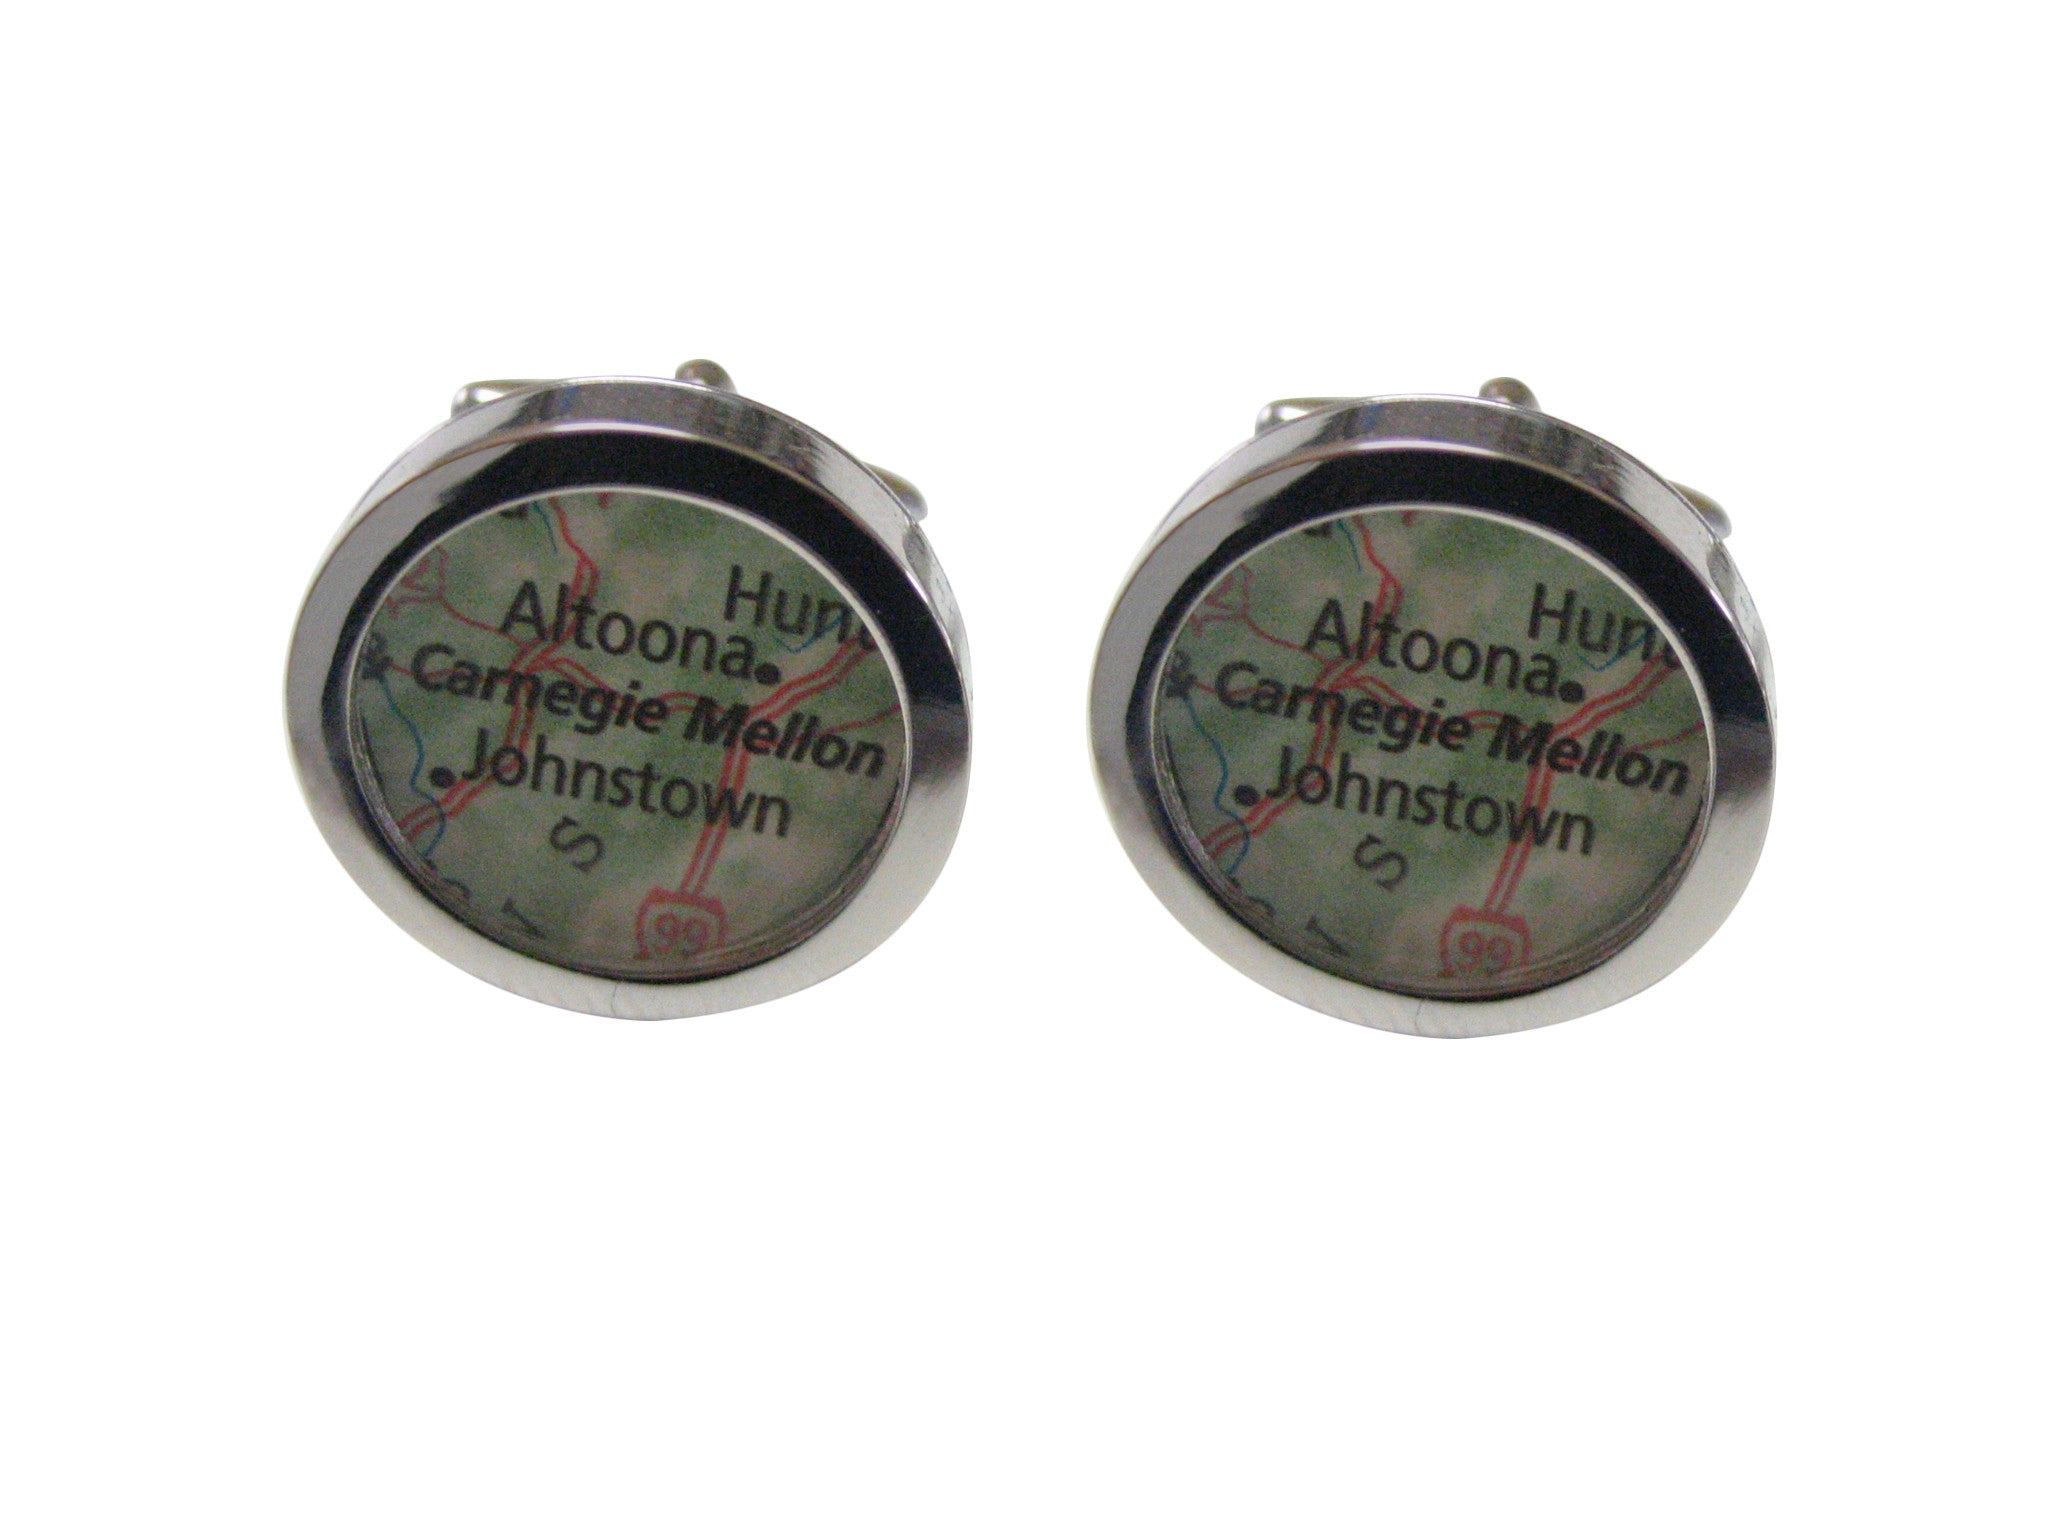 Carnegie Mellon University Map Cufflinks